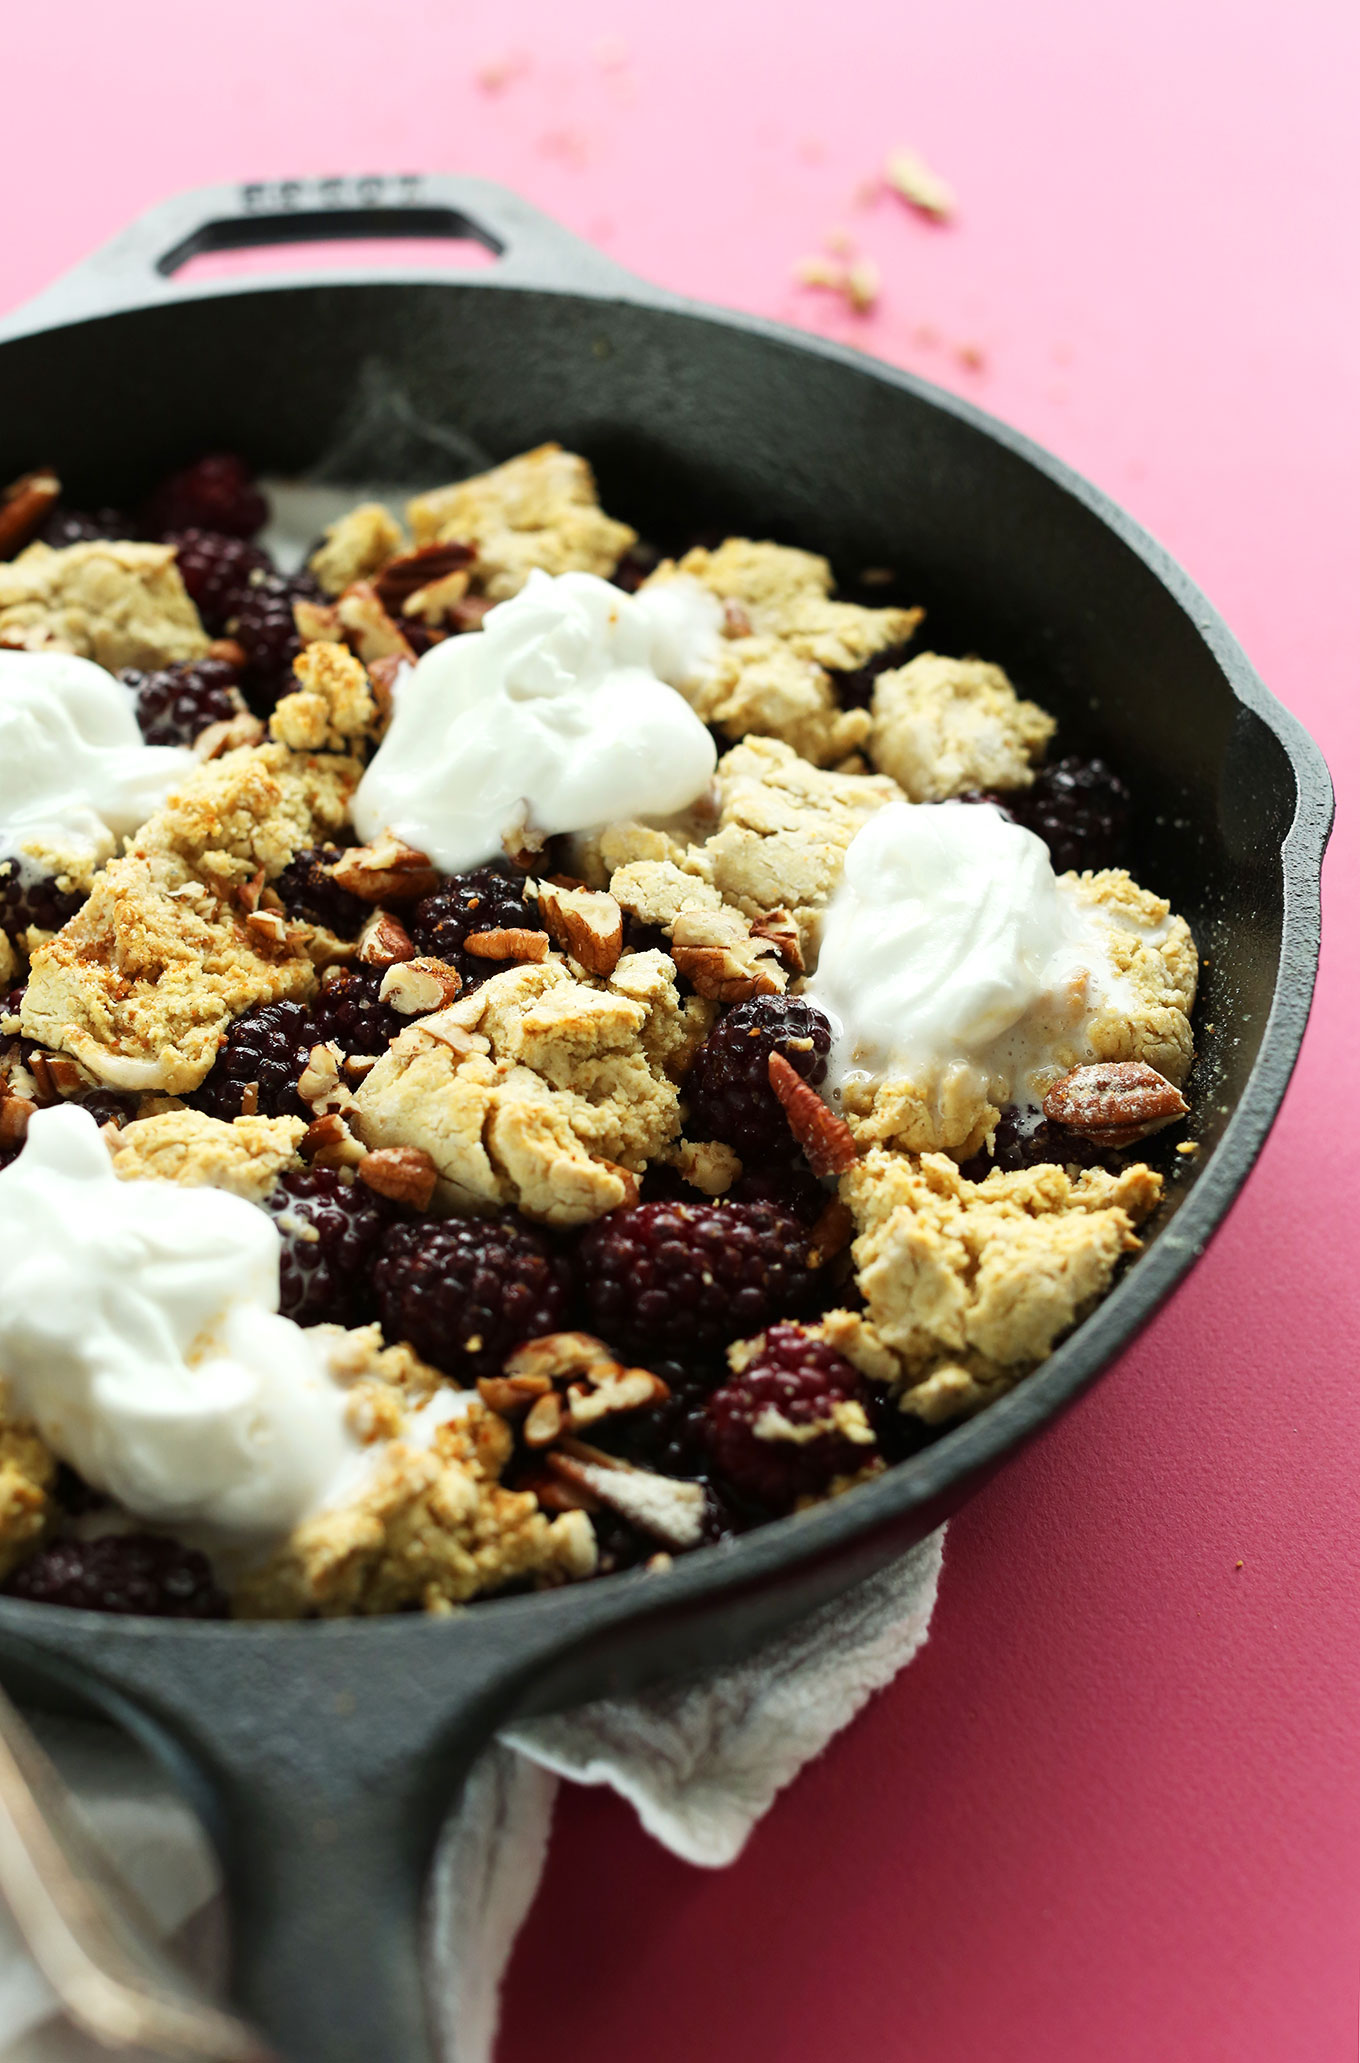 AMAZING Vegan Gluten-Free Blackberry Cobbler! Naturally sweetened fruit and tender crumbly biscuit topping! SO perfect for spring and summer #minimalistbaker #vegan #glutenfree #dessert #minimalistbaker